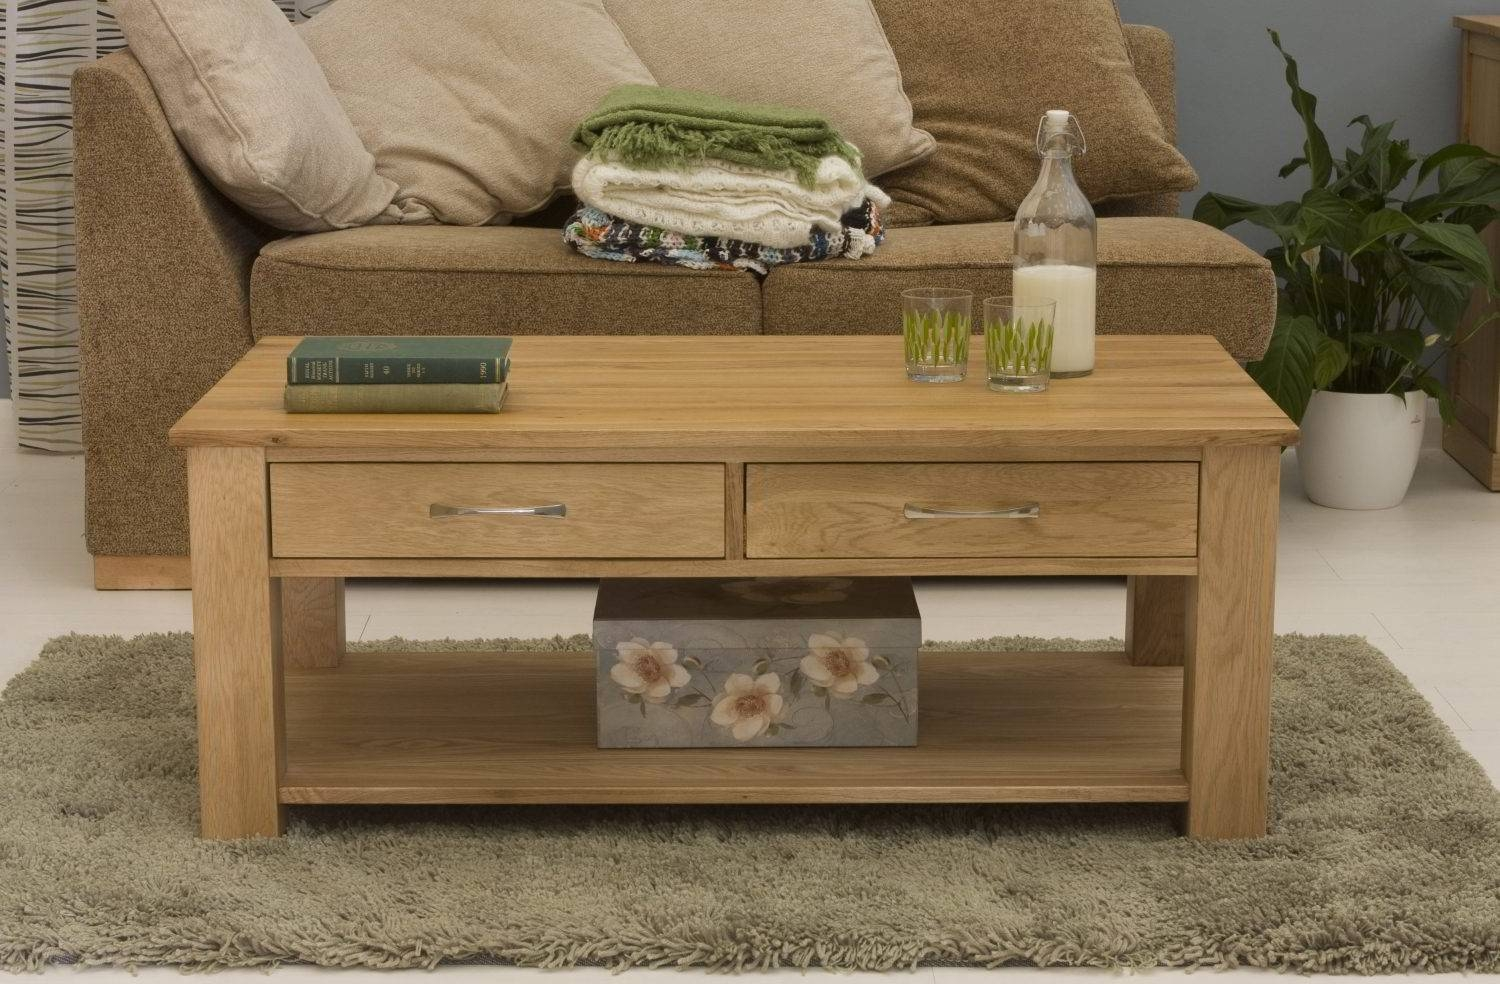 Conran Solid Oak Living Room Lounge Furniture Four Drawer Storage Inside Solid Oak Coffee Table With Storage (View 3 of 15)